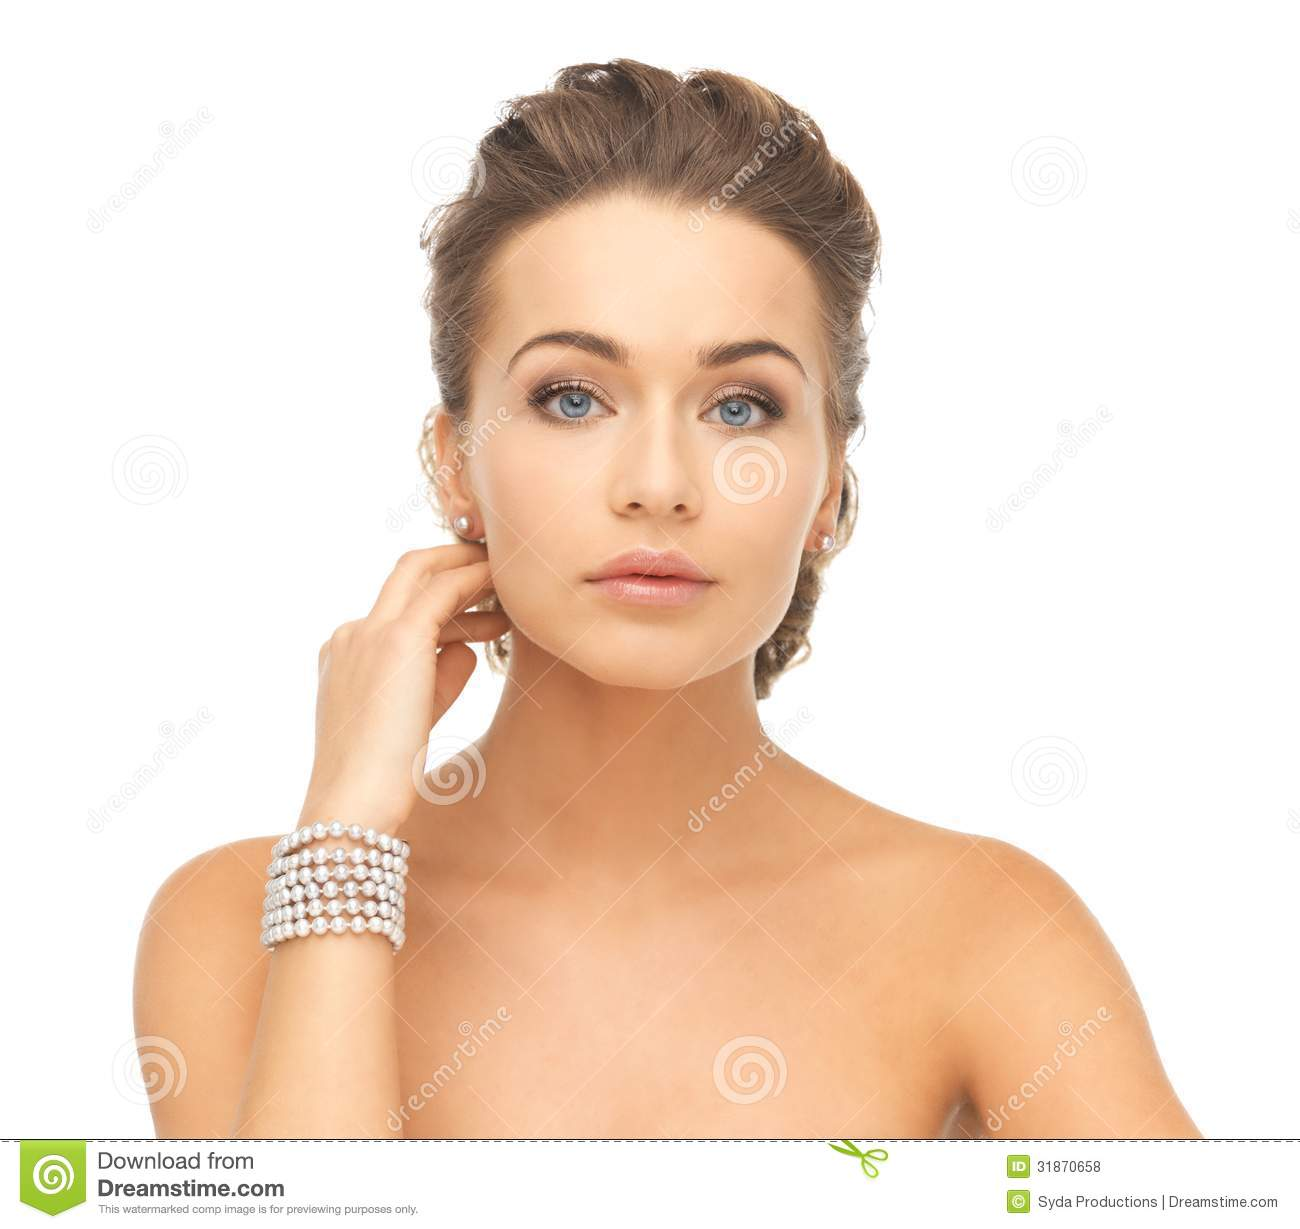 Innovative Woman Wearing Shiny Diamond Earrings Stock Photo  Image